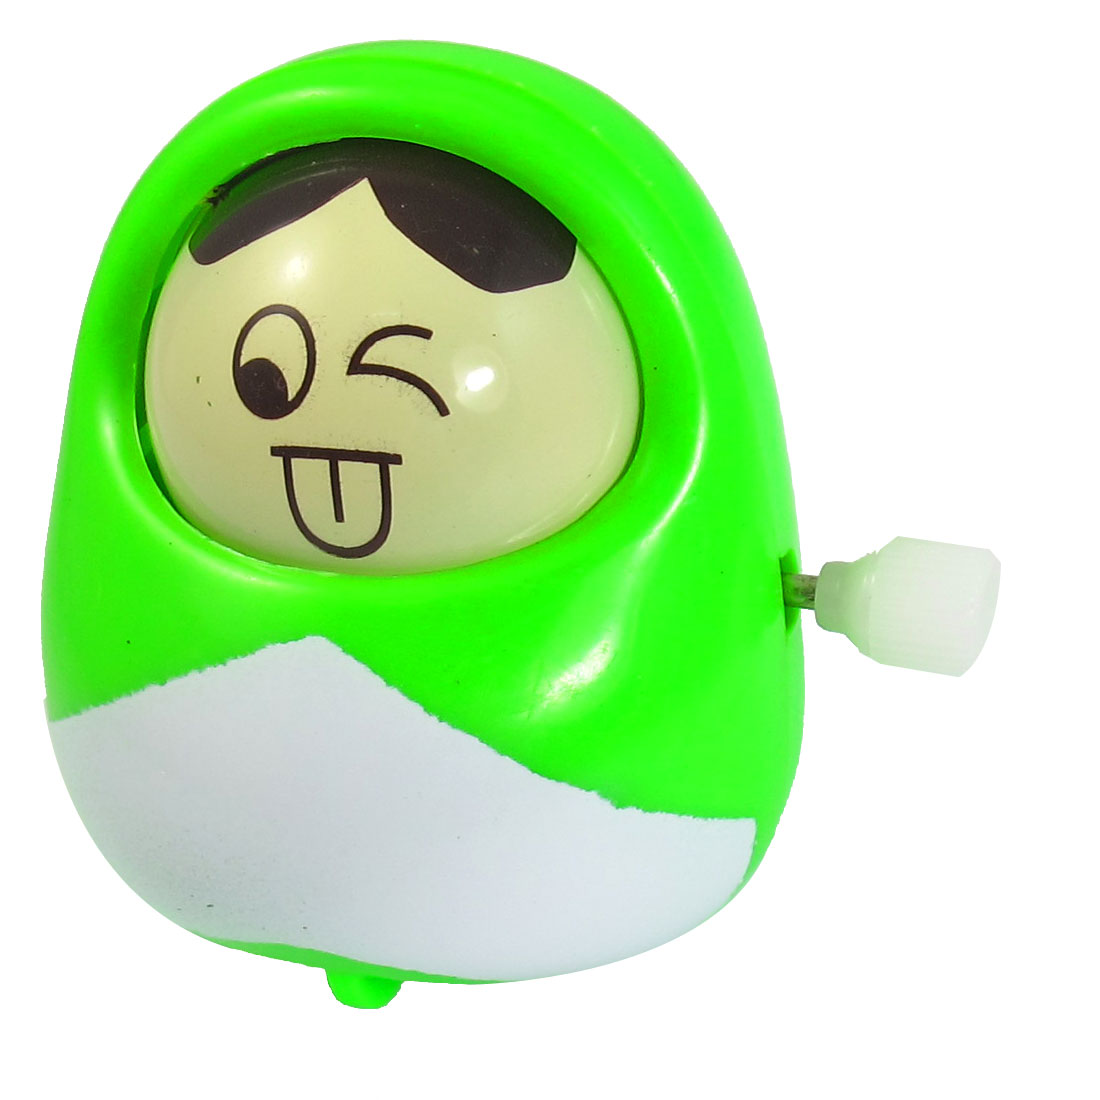 Green Plastic Naughty Boy Design Running with Wheels Wind up Toy